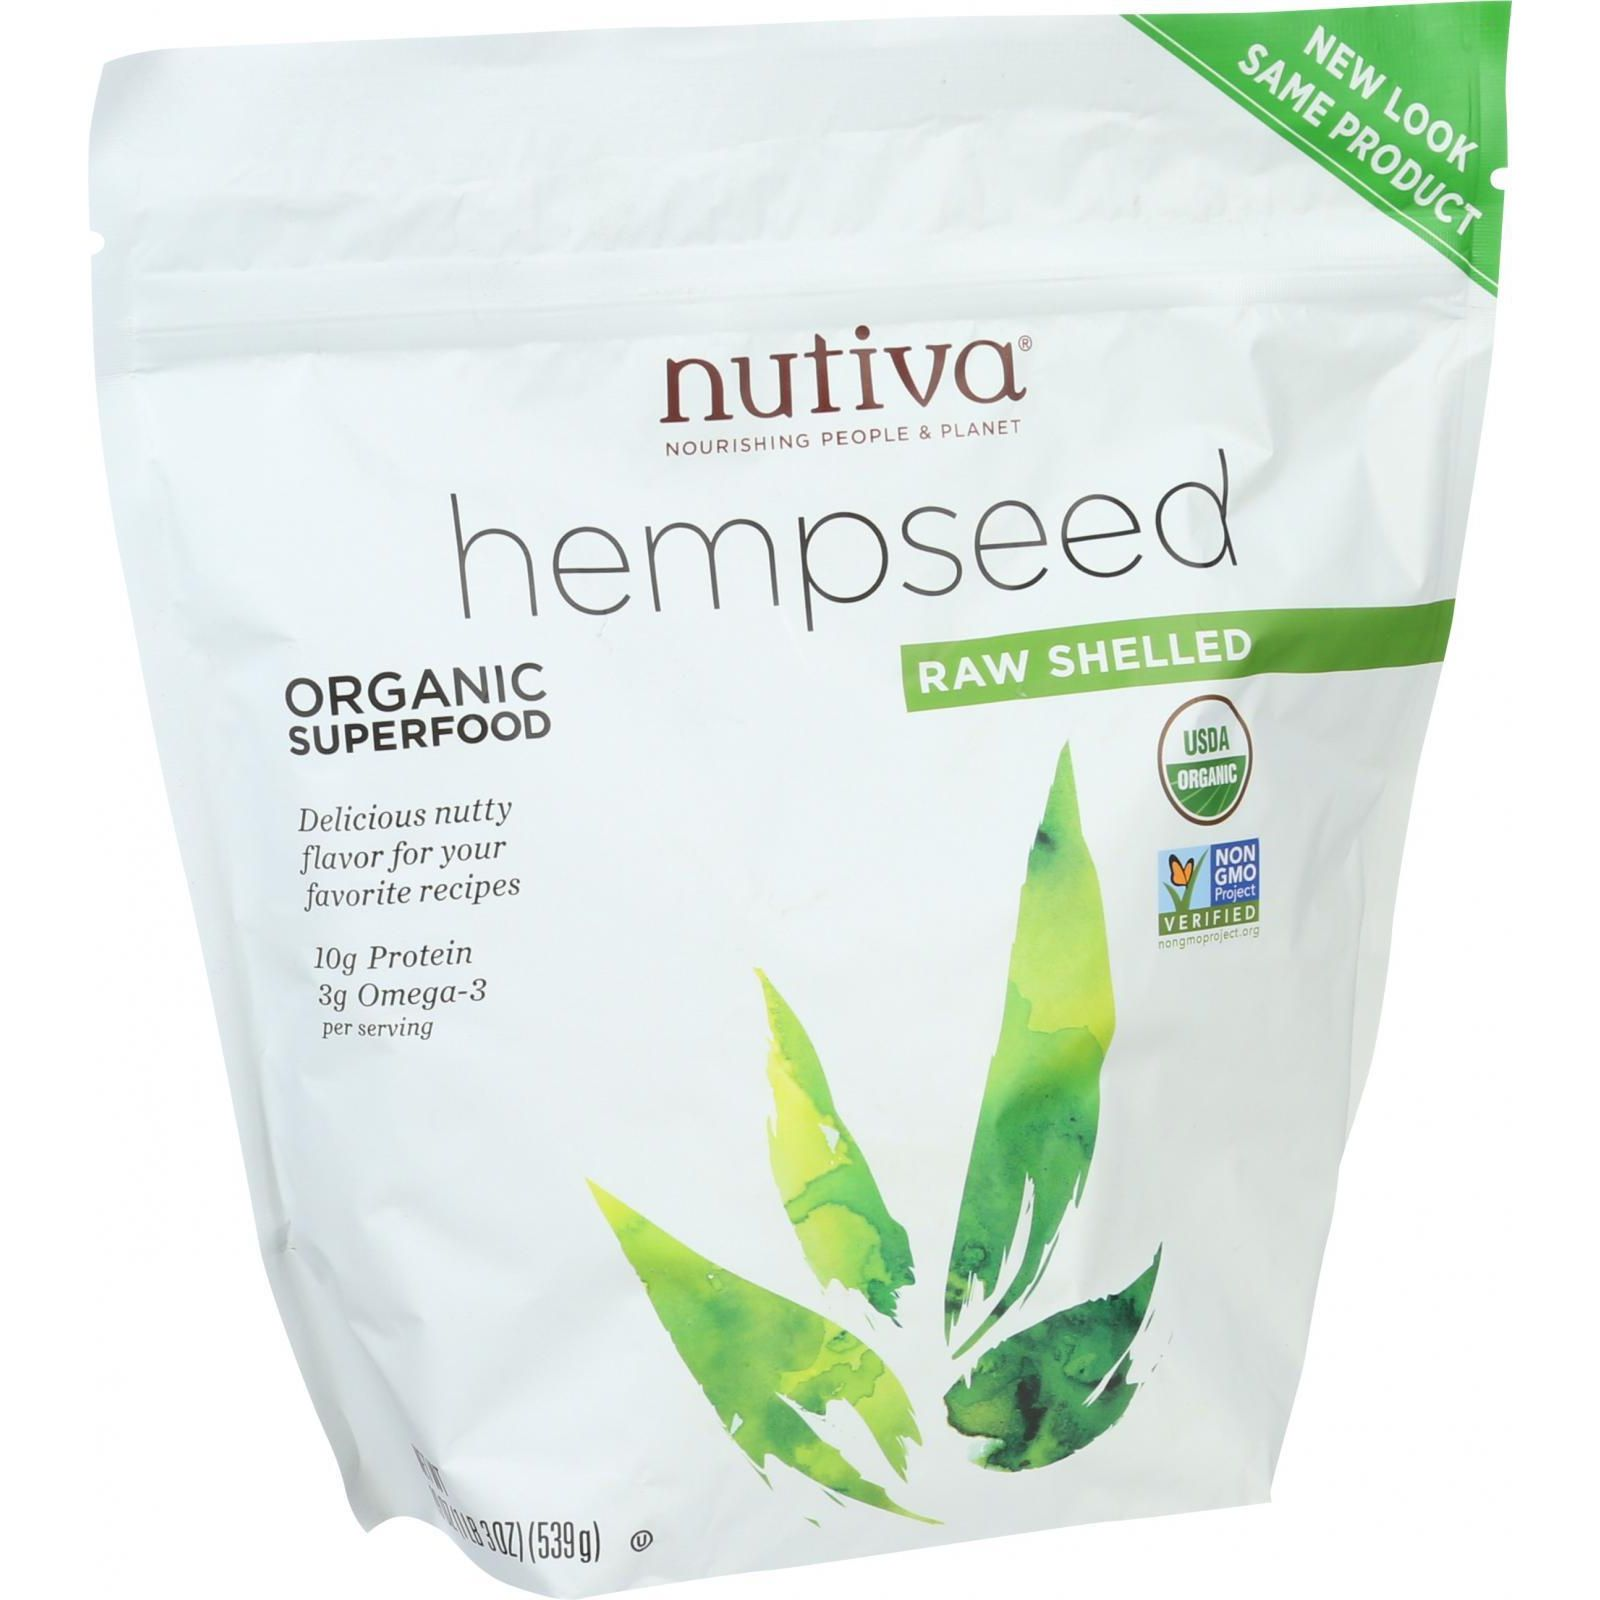 Nutiva Organic Raw Shelled Hemp Seeds, 1.2 Lb, 18 Servings